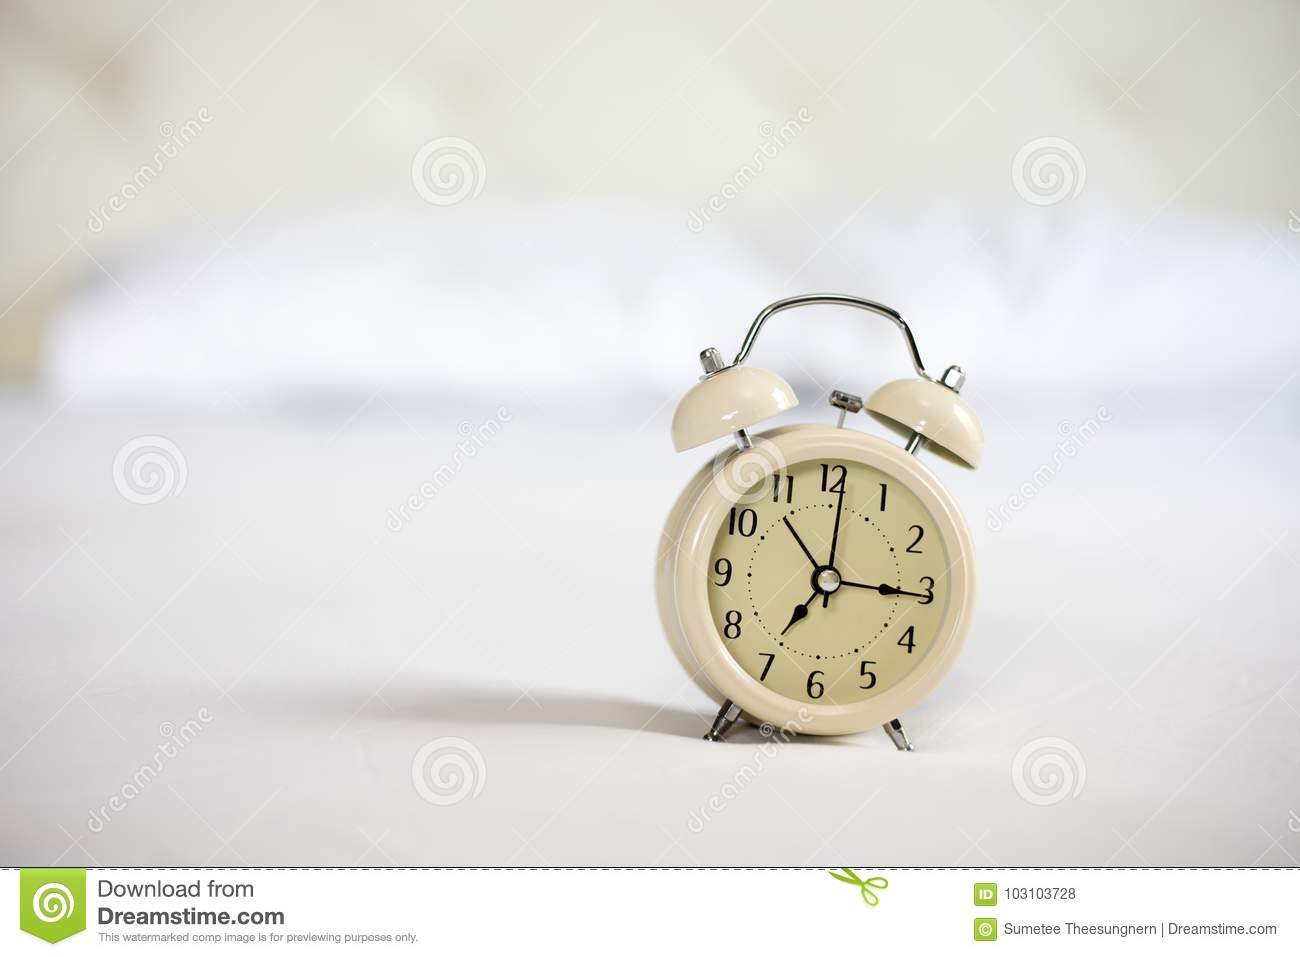 Analog alarm clock on white bed, time in the morning with a brig